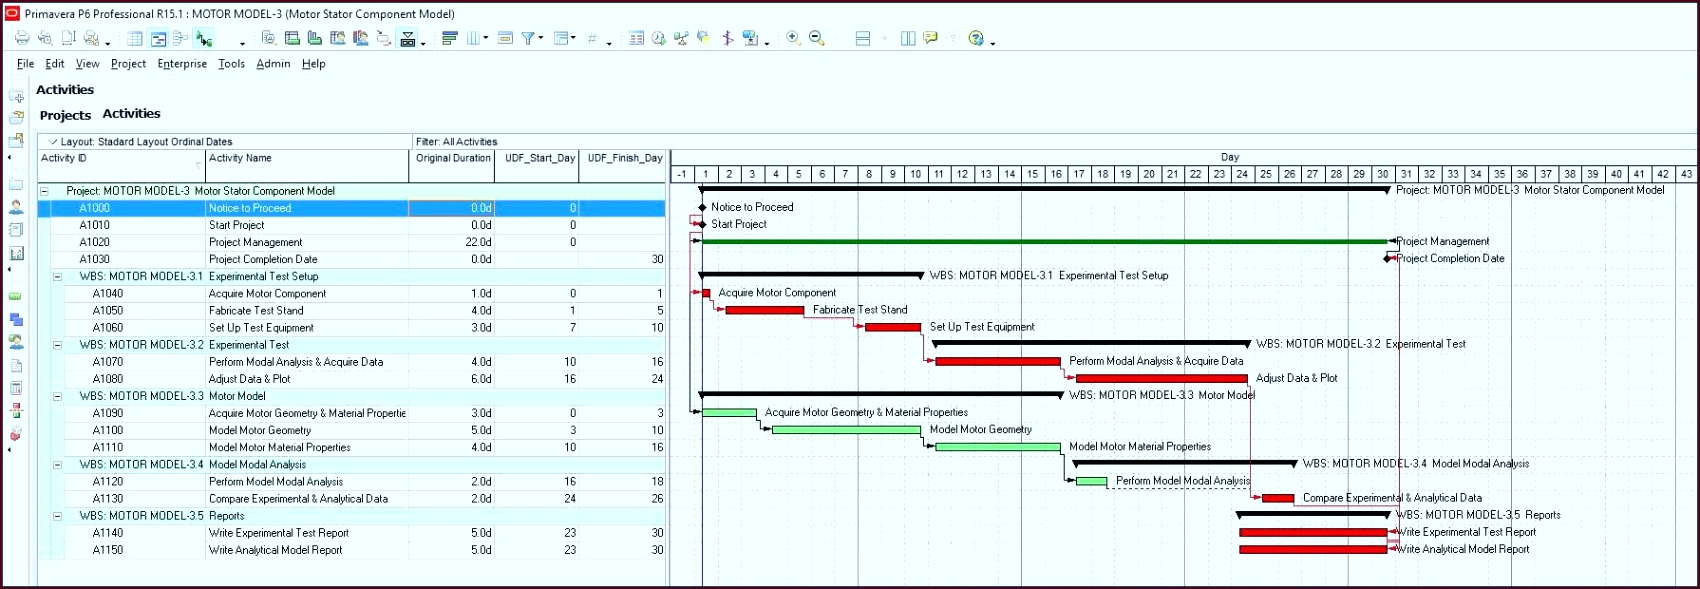 project bud template excel free beautiful best wbs exemple larfll of project bud template excel free yuopu